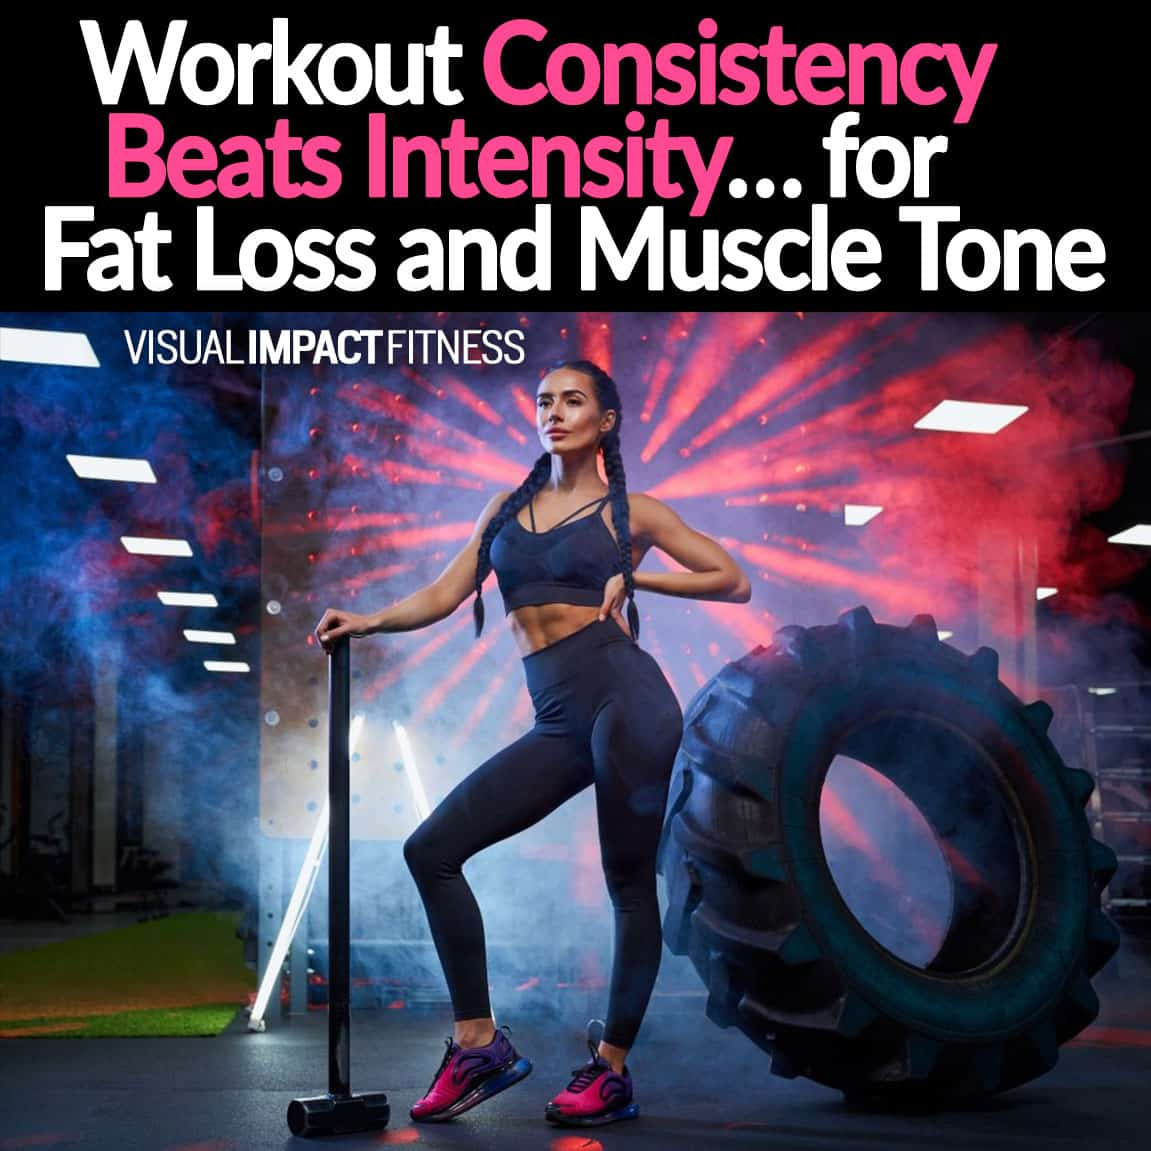 Workout Consistency Beats Intensity… for Fat Loss and Muscle Tone